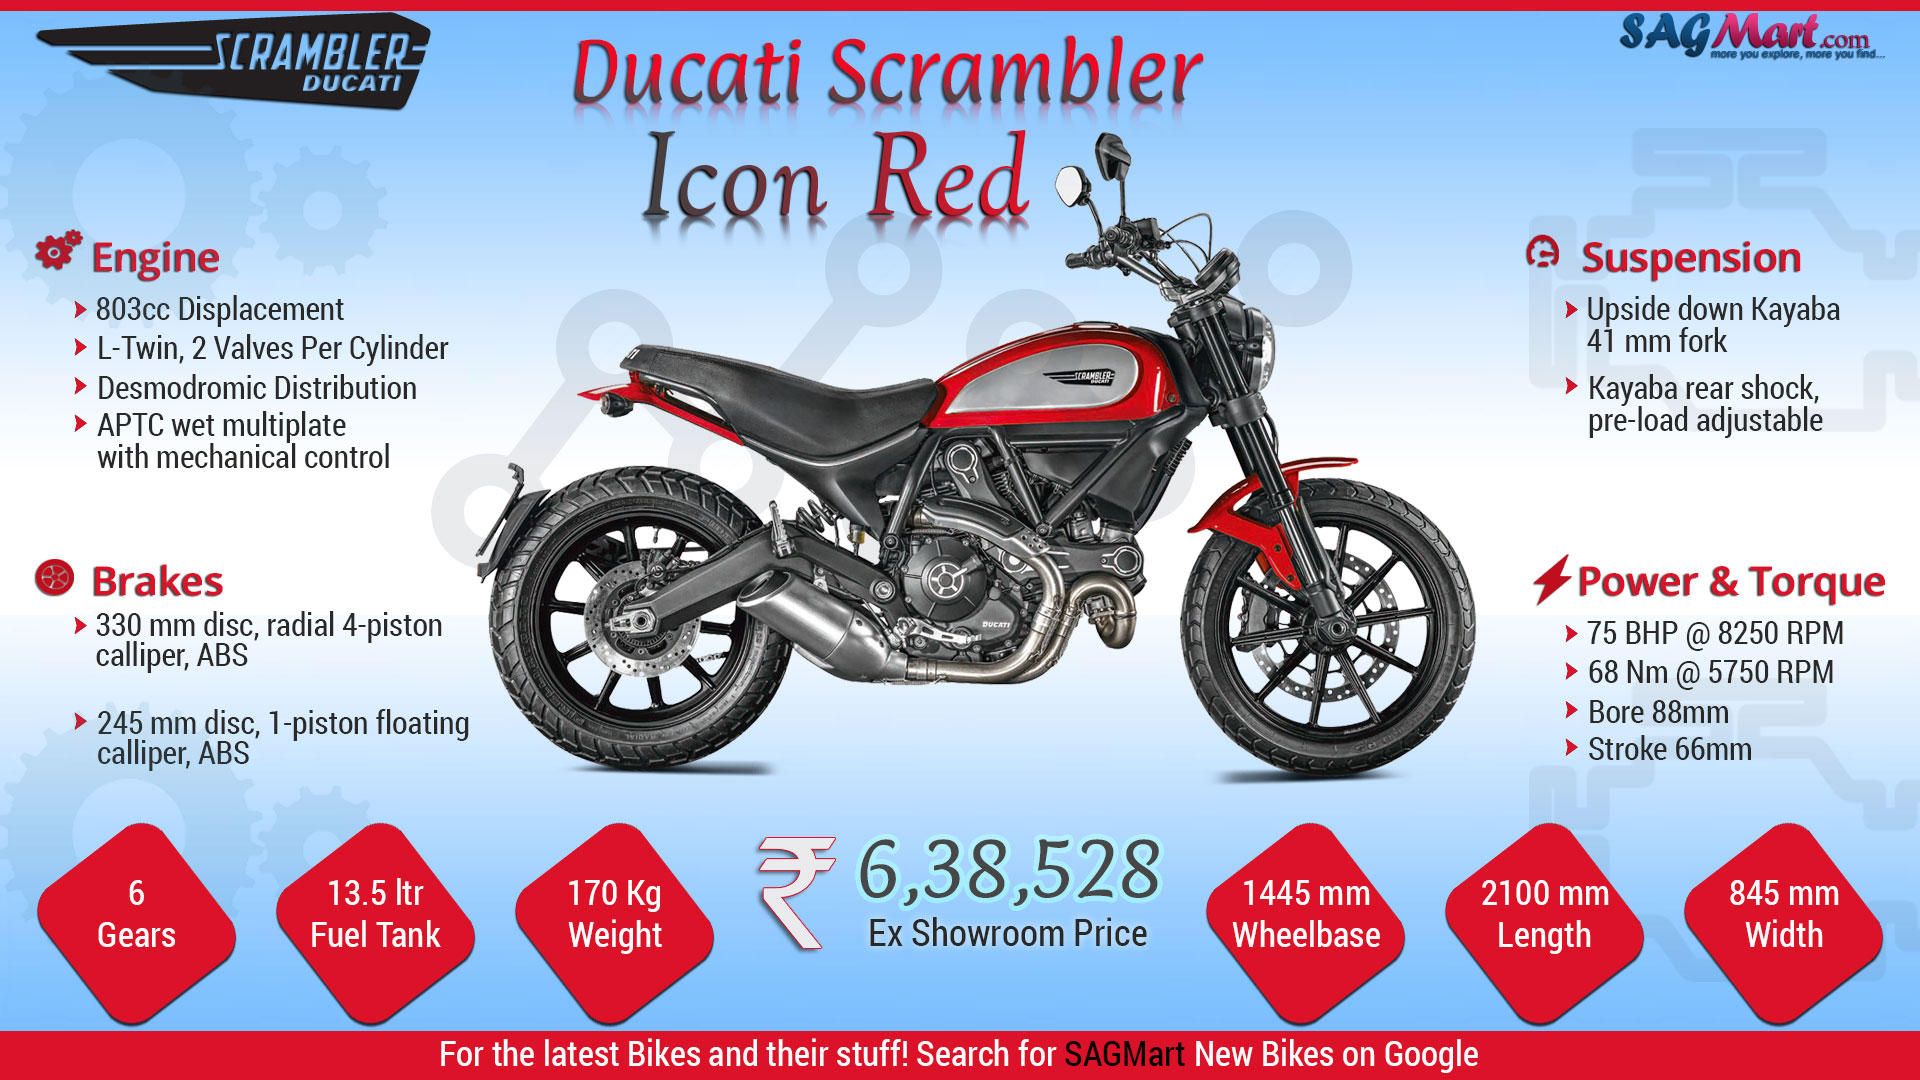 Ducati Scrambler Icon Red